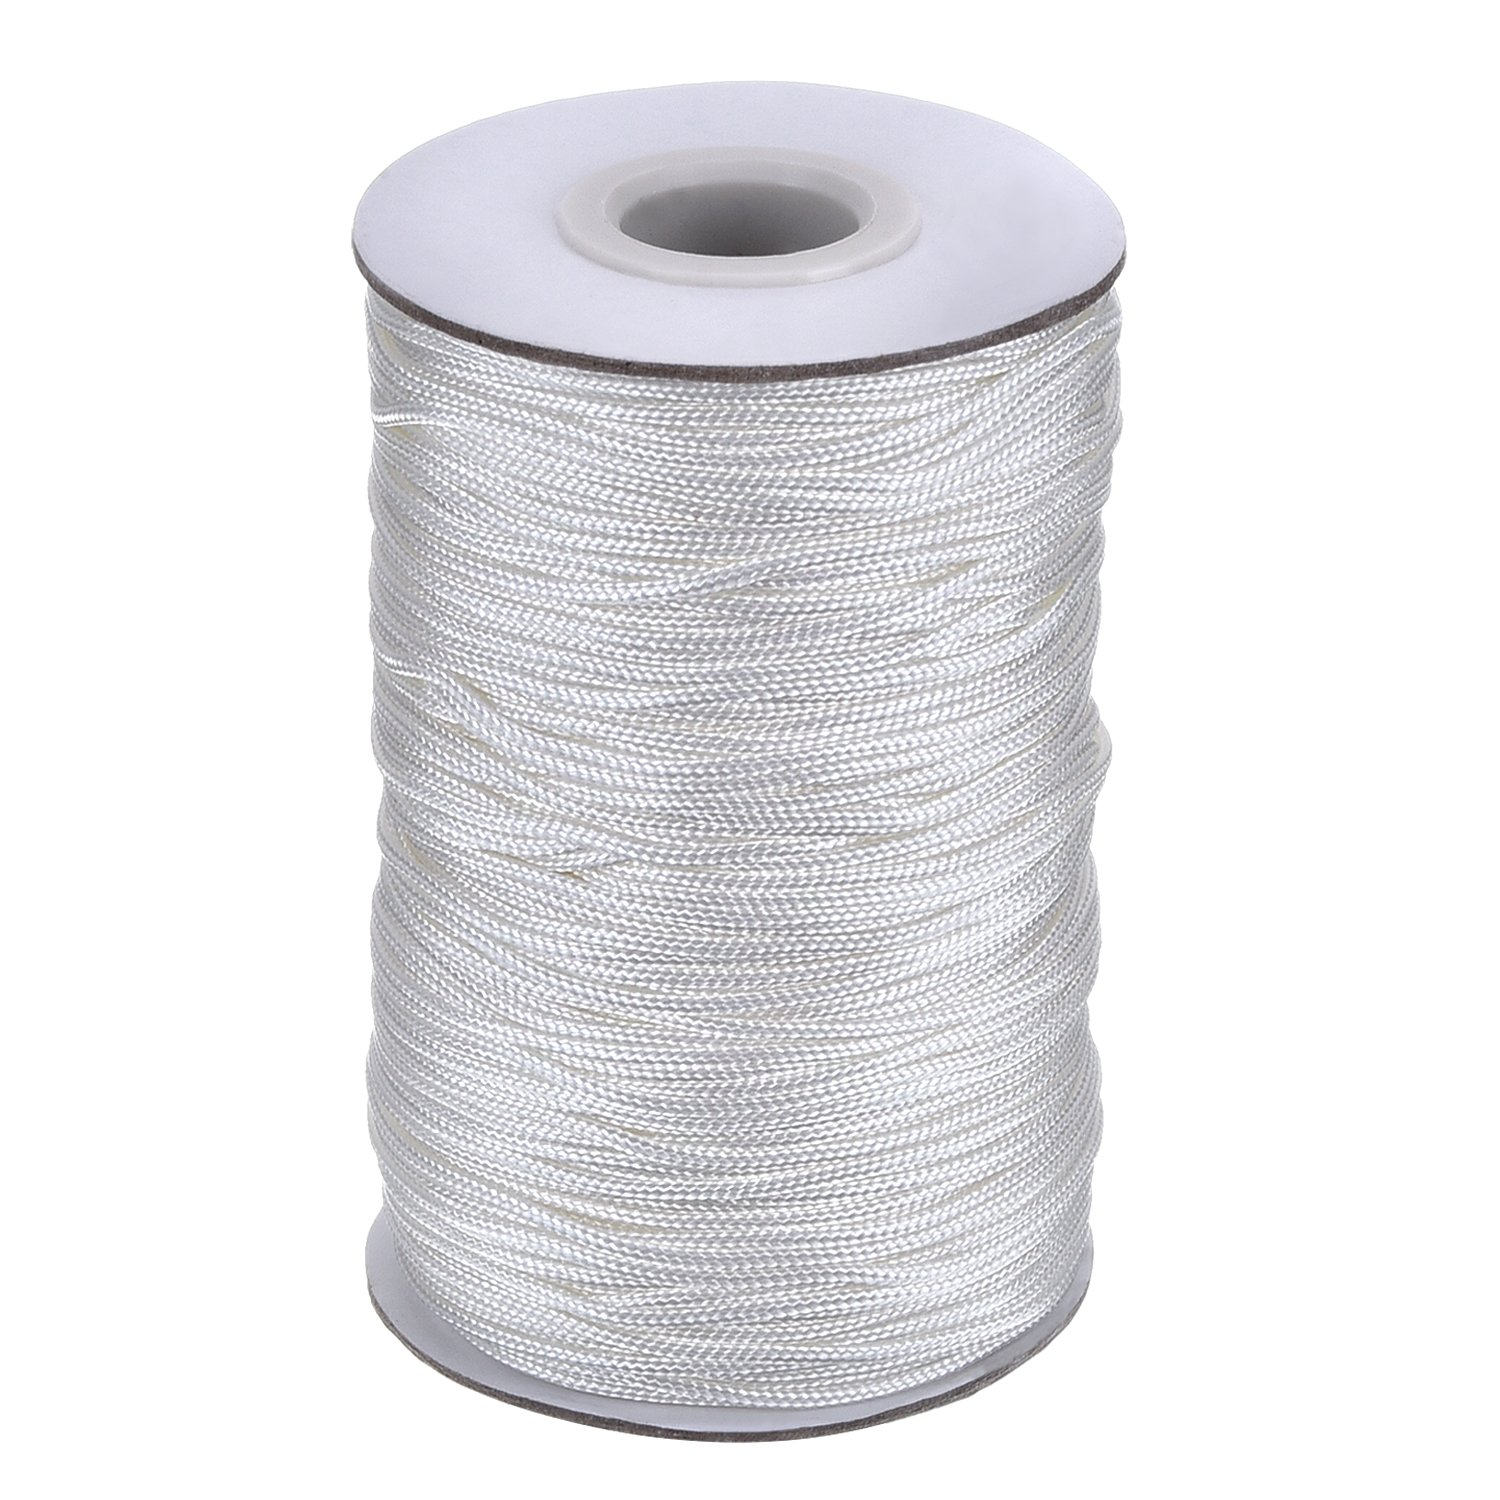 100 Yards - Ivory Repair DIY Projects Roman Shade Cord /& Wind Chime Cord Mini Blind Cord Durable Polyester Lift Cord Micro Cord//Nano Cord for Crafting - SGT KNOTS Home Decor 1.4 mm